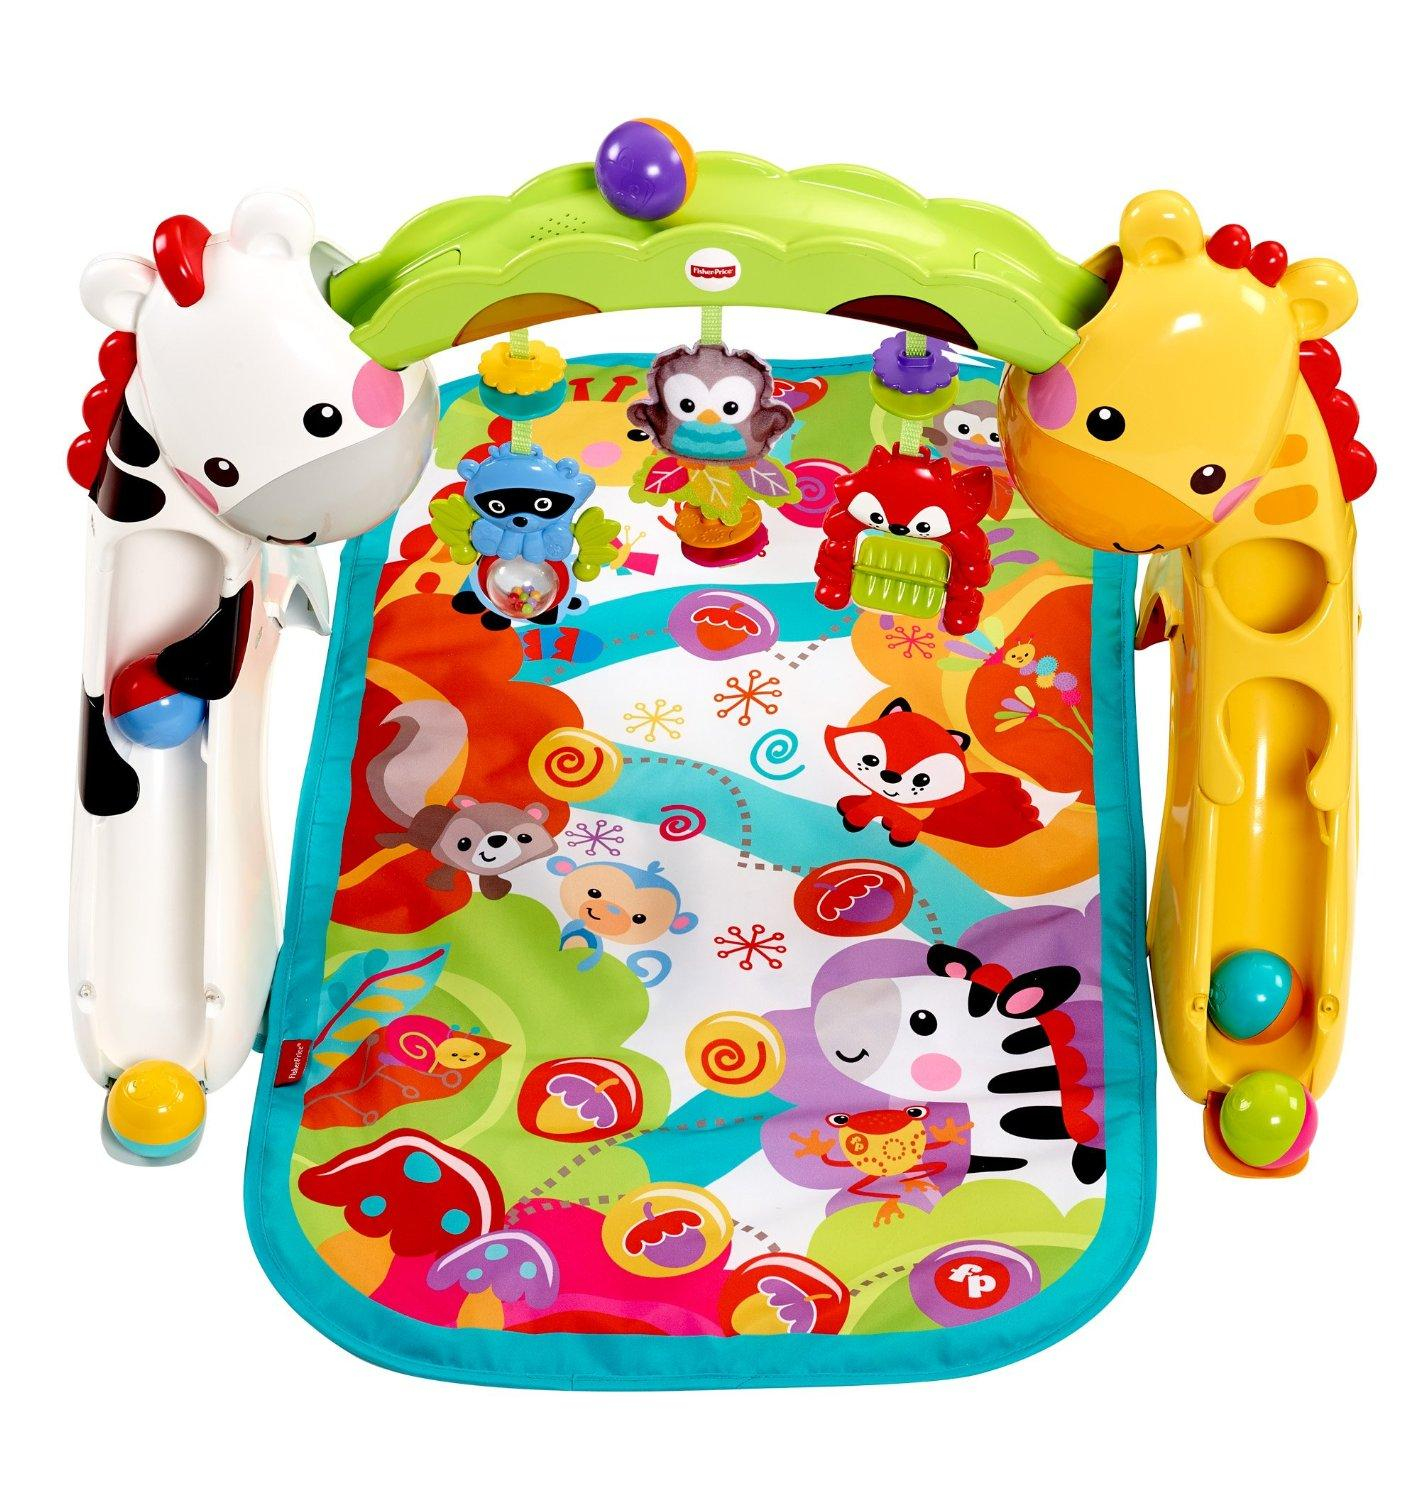 NEW Fisher Price Newborn to Toddler Play Gym More than 10